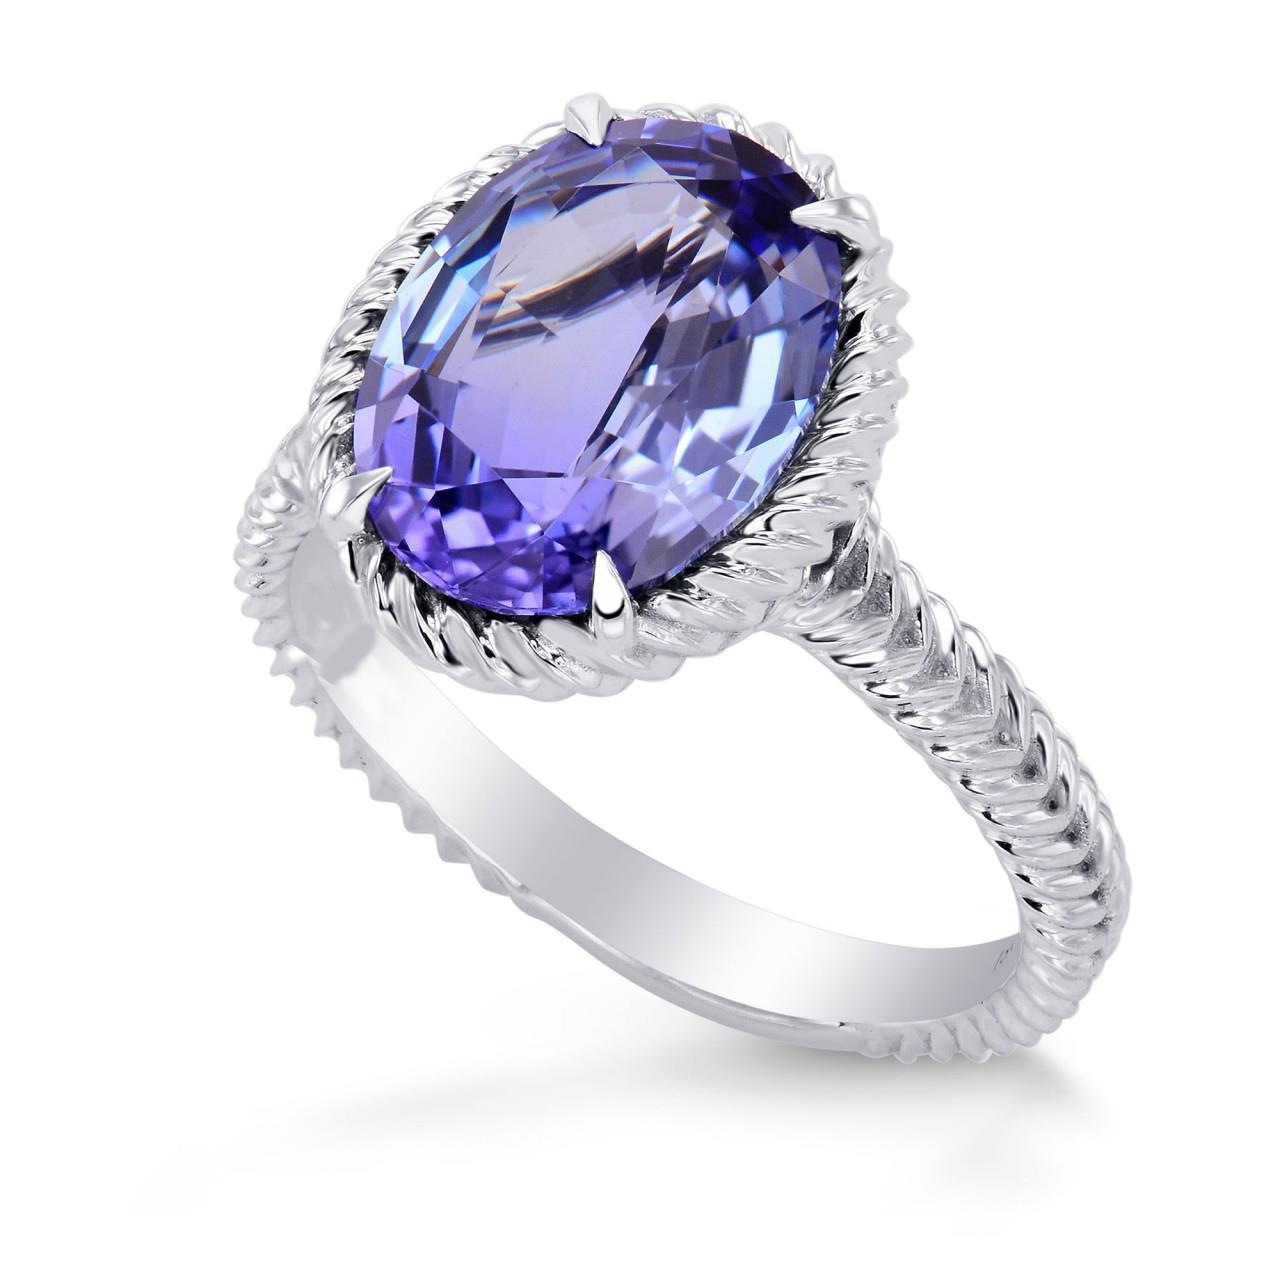 Big 5.00 Carat Oval Cut Prong Set Tanzanite Ring White Gemstone Ring